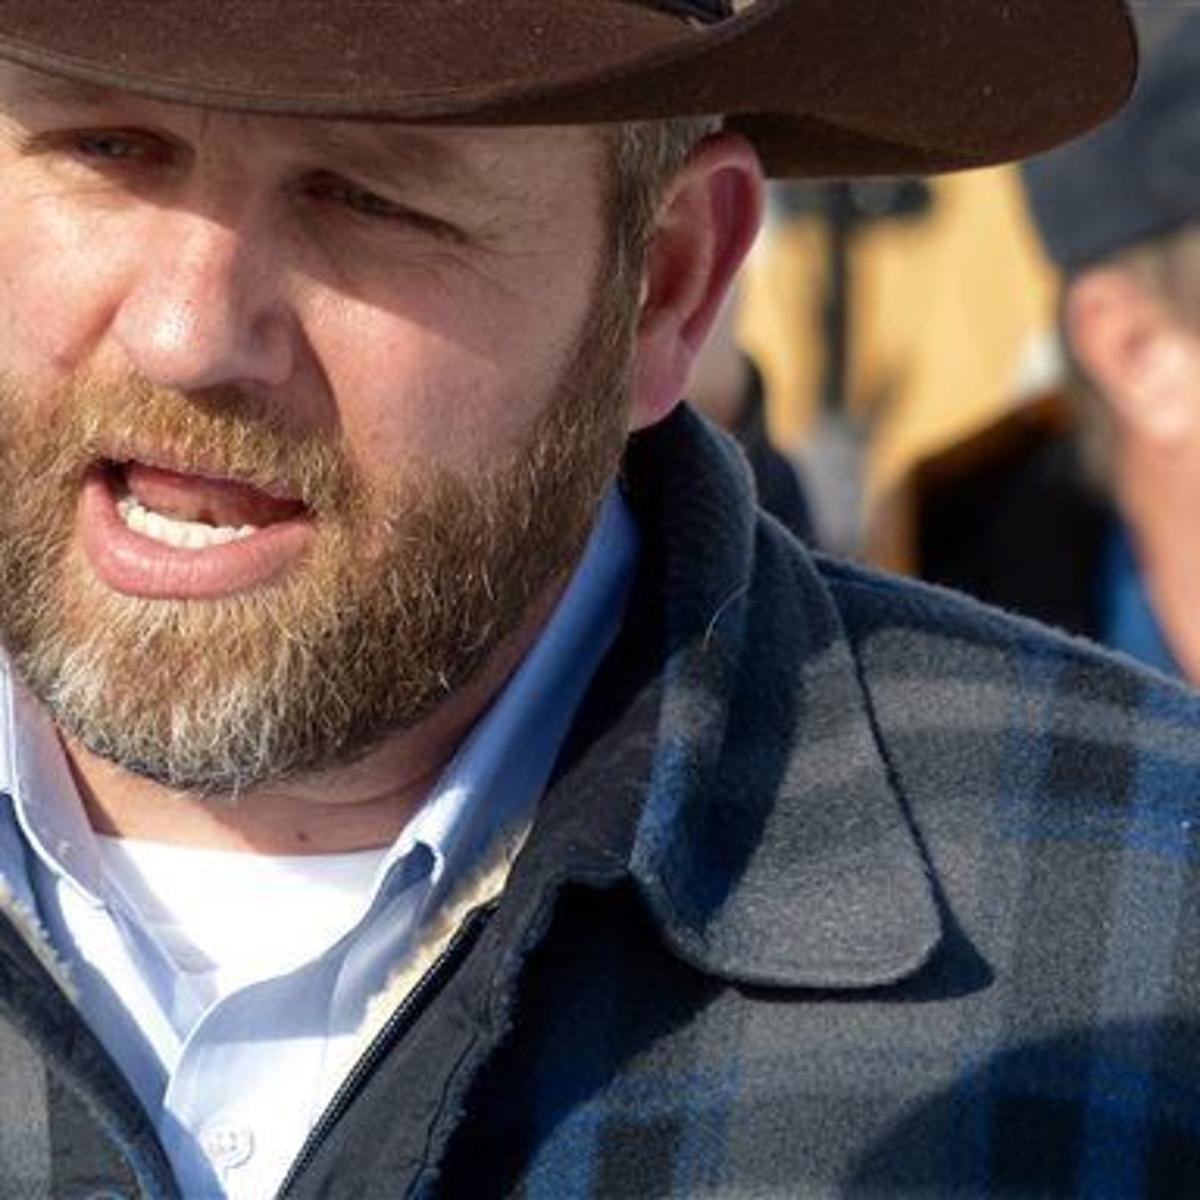 Oregon sheriff says refuge occupiers trying to overthrow